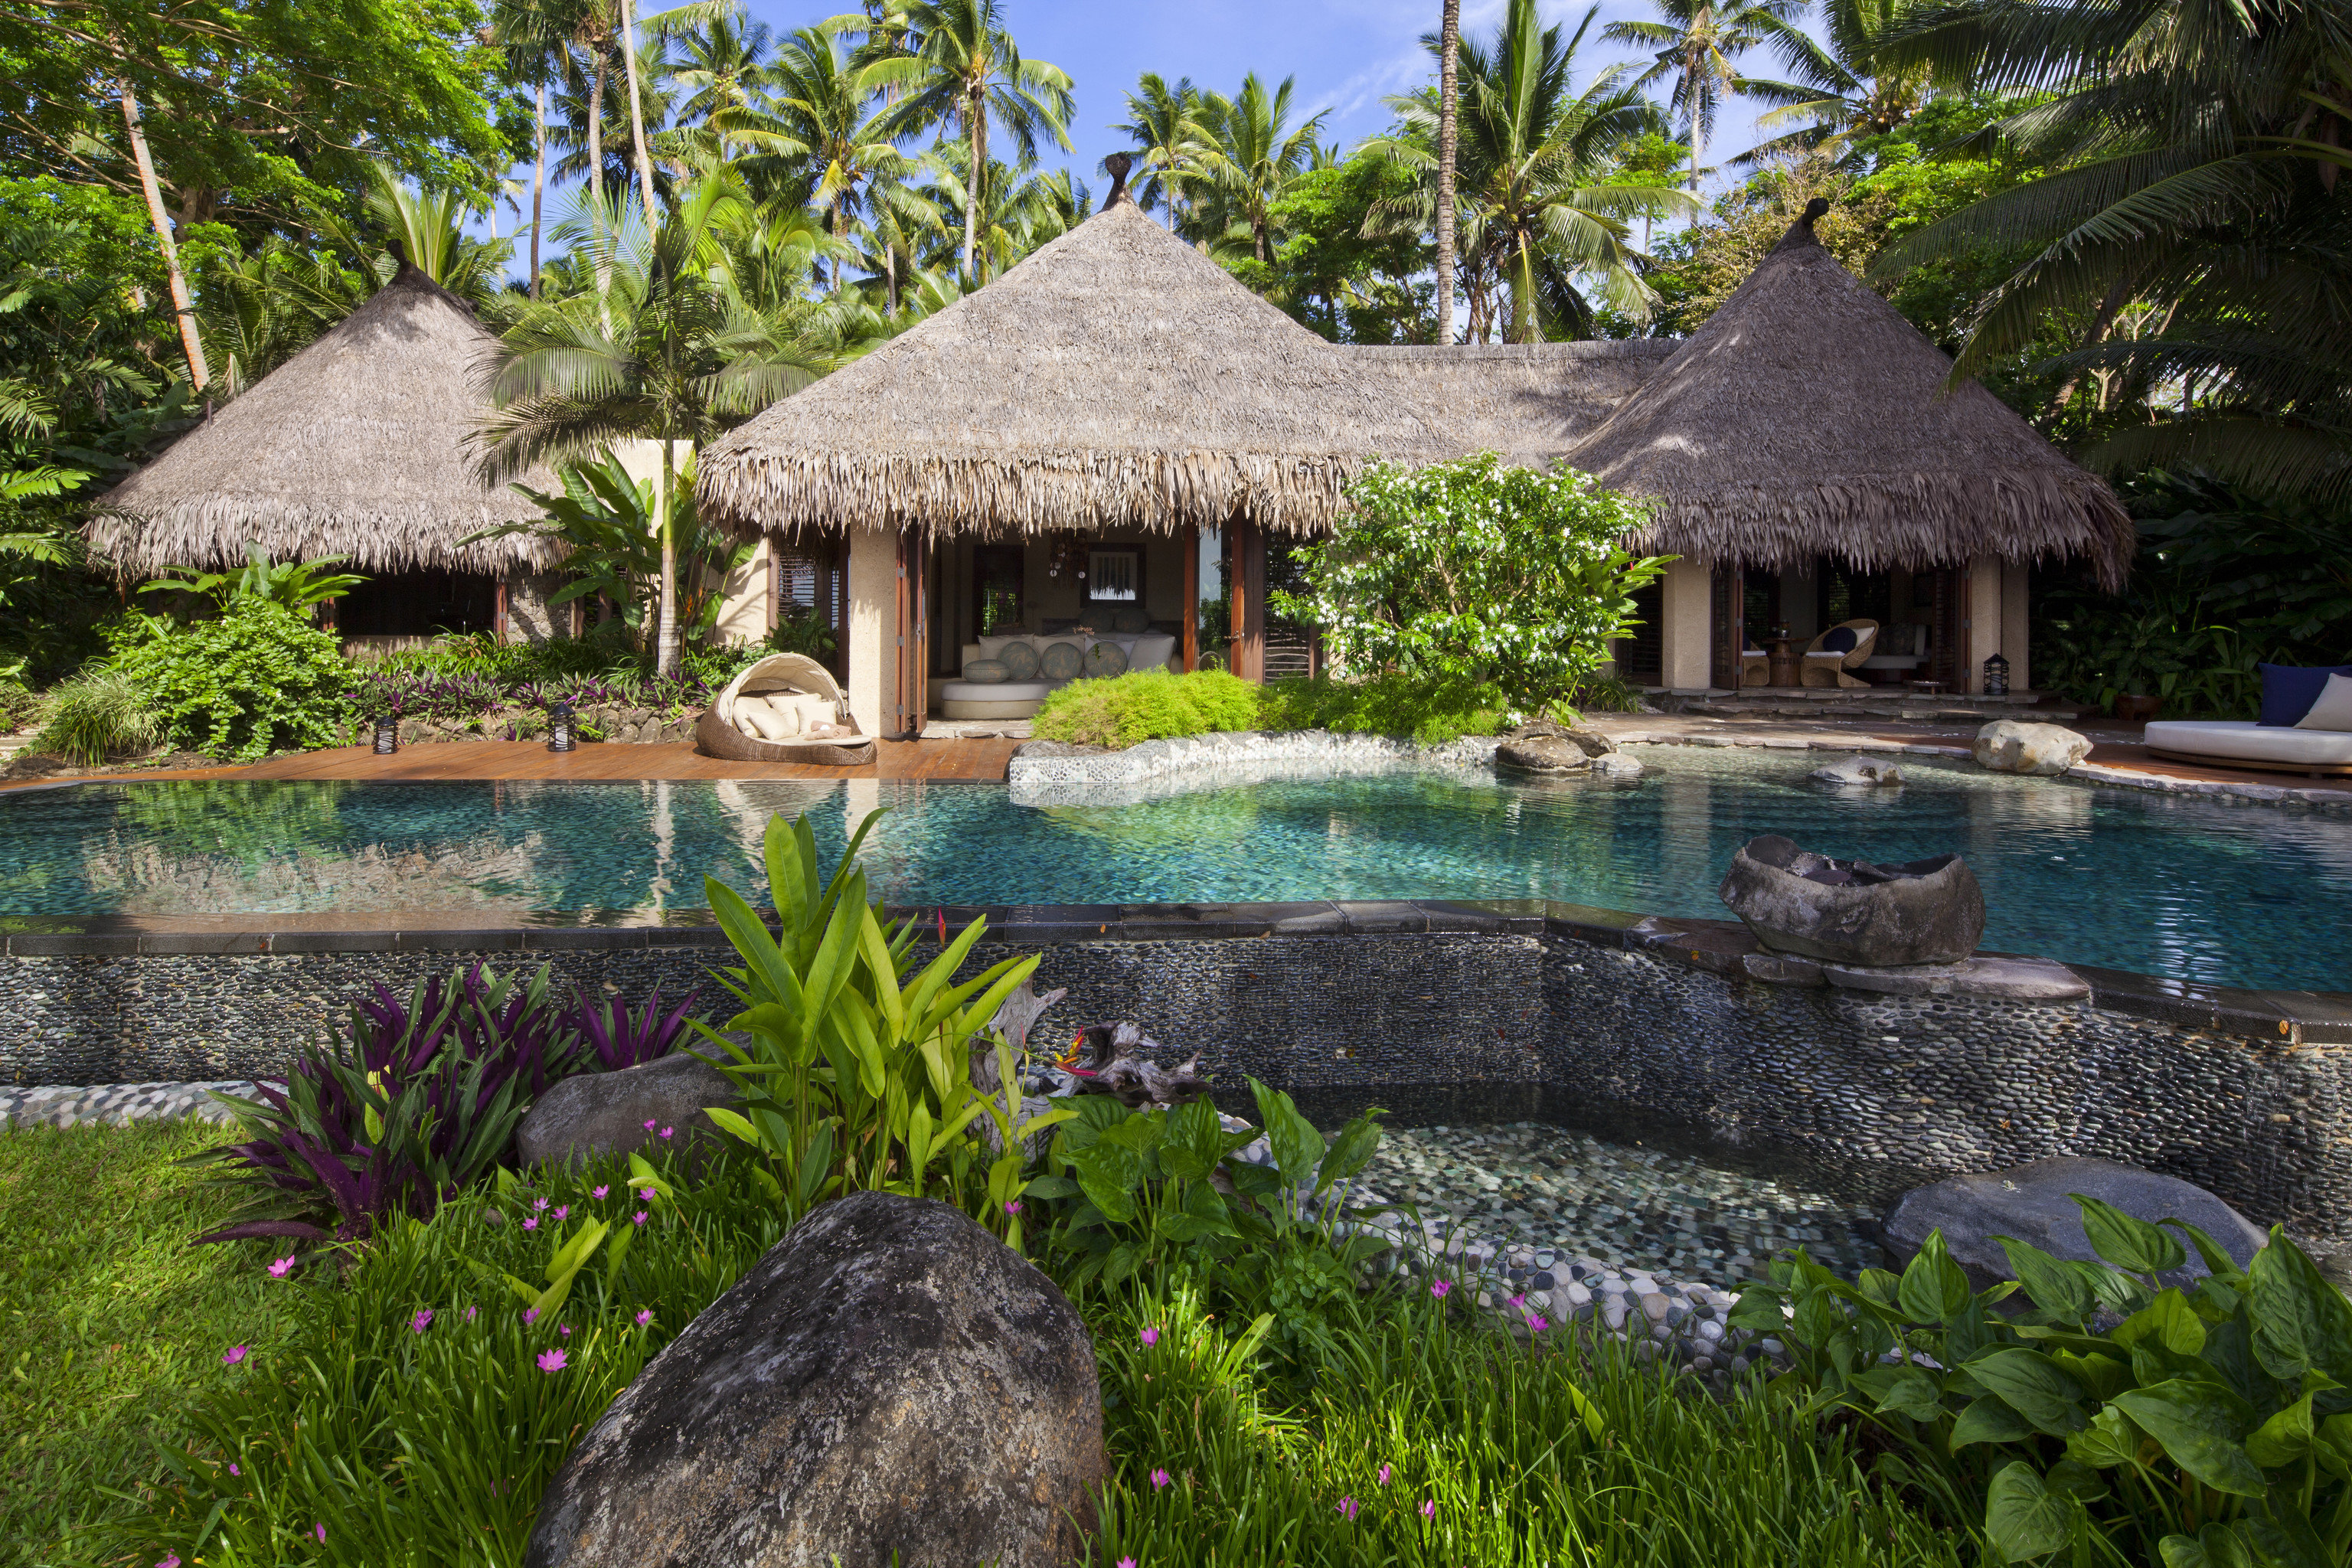 All-Inclusive Resorts Boutique Hotels Hotels Romance outdoor tree grass rock Resort house swimming pool building arecales water leisure palm tree plant tropics estate cottage real estate Garden reflection hacienda landscape Villa outdoor structure Jungle landscaping lawn hut stone area surrounded